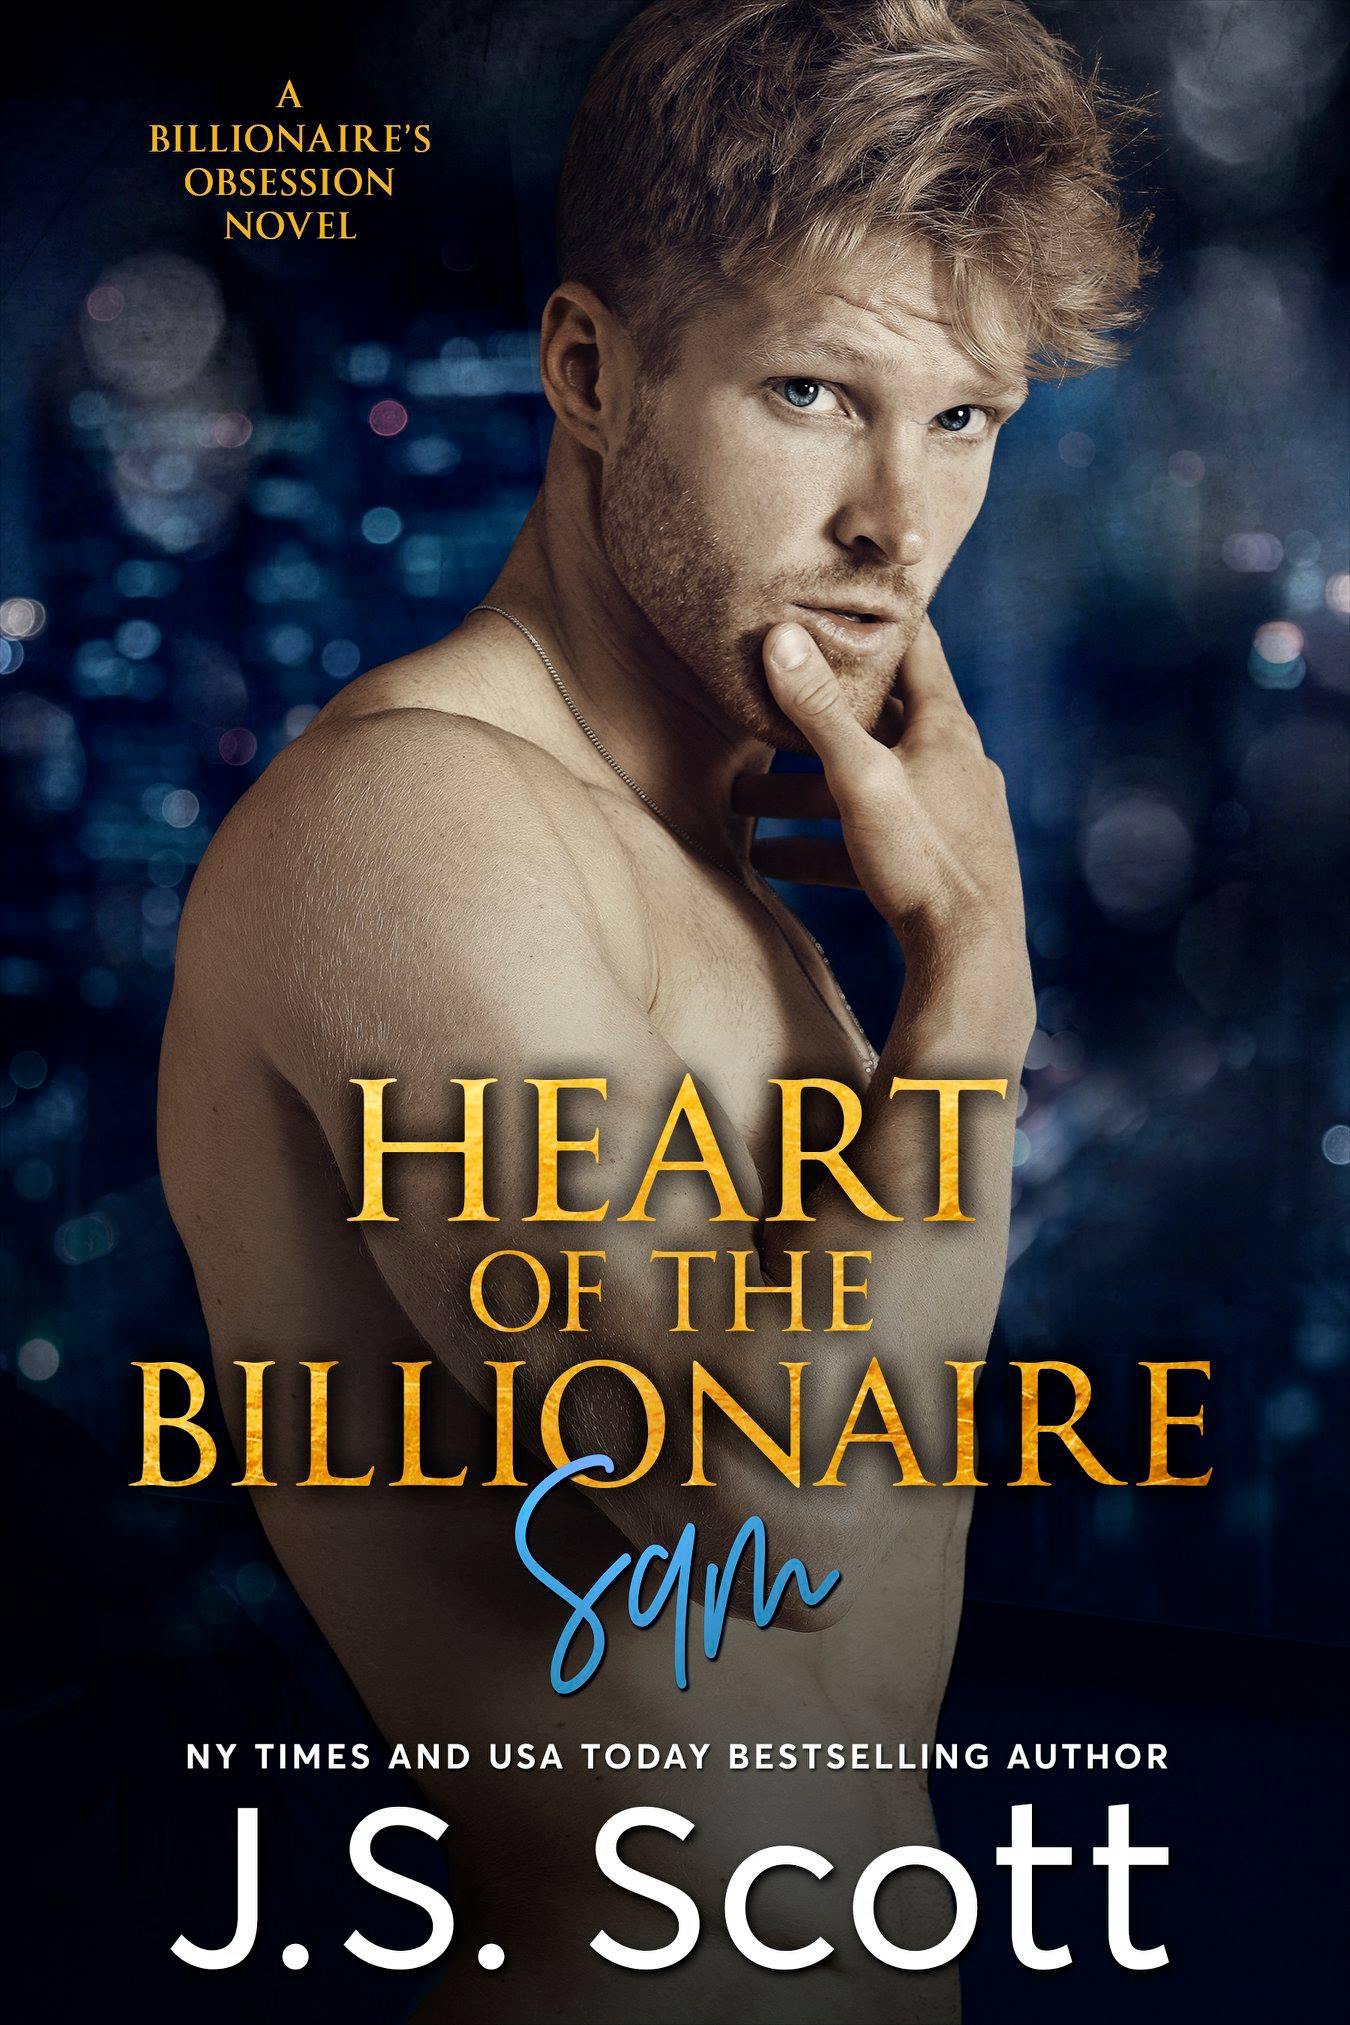 HEART OF THE BILLIONAIRE - SAM